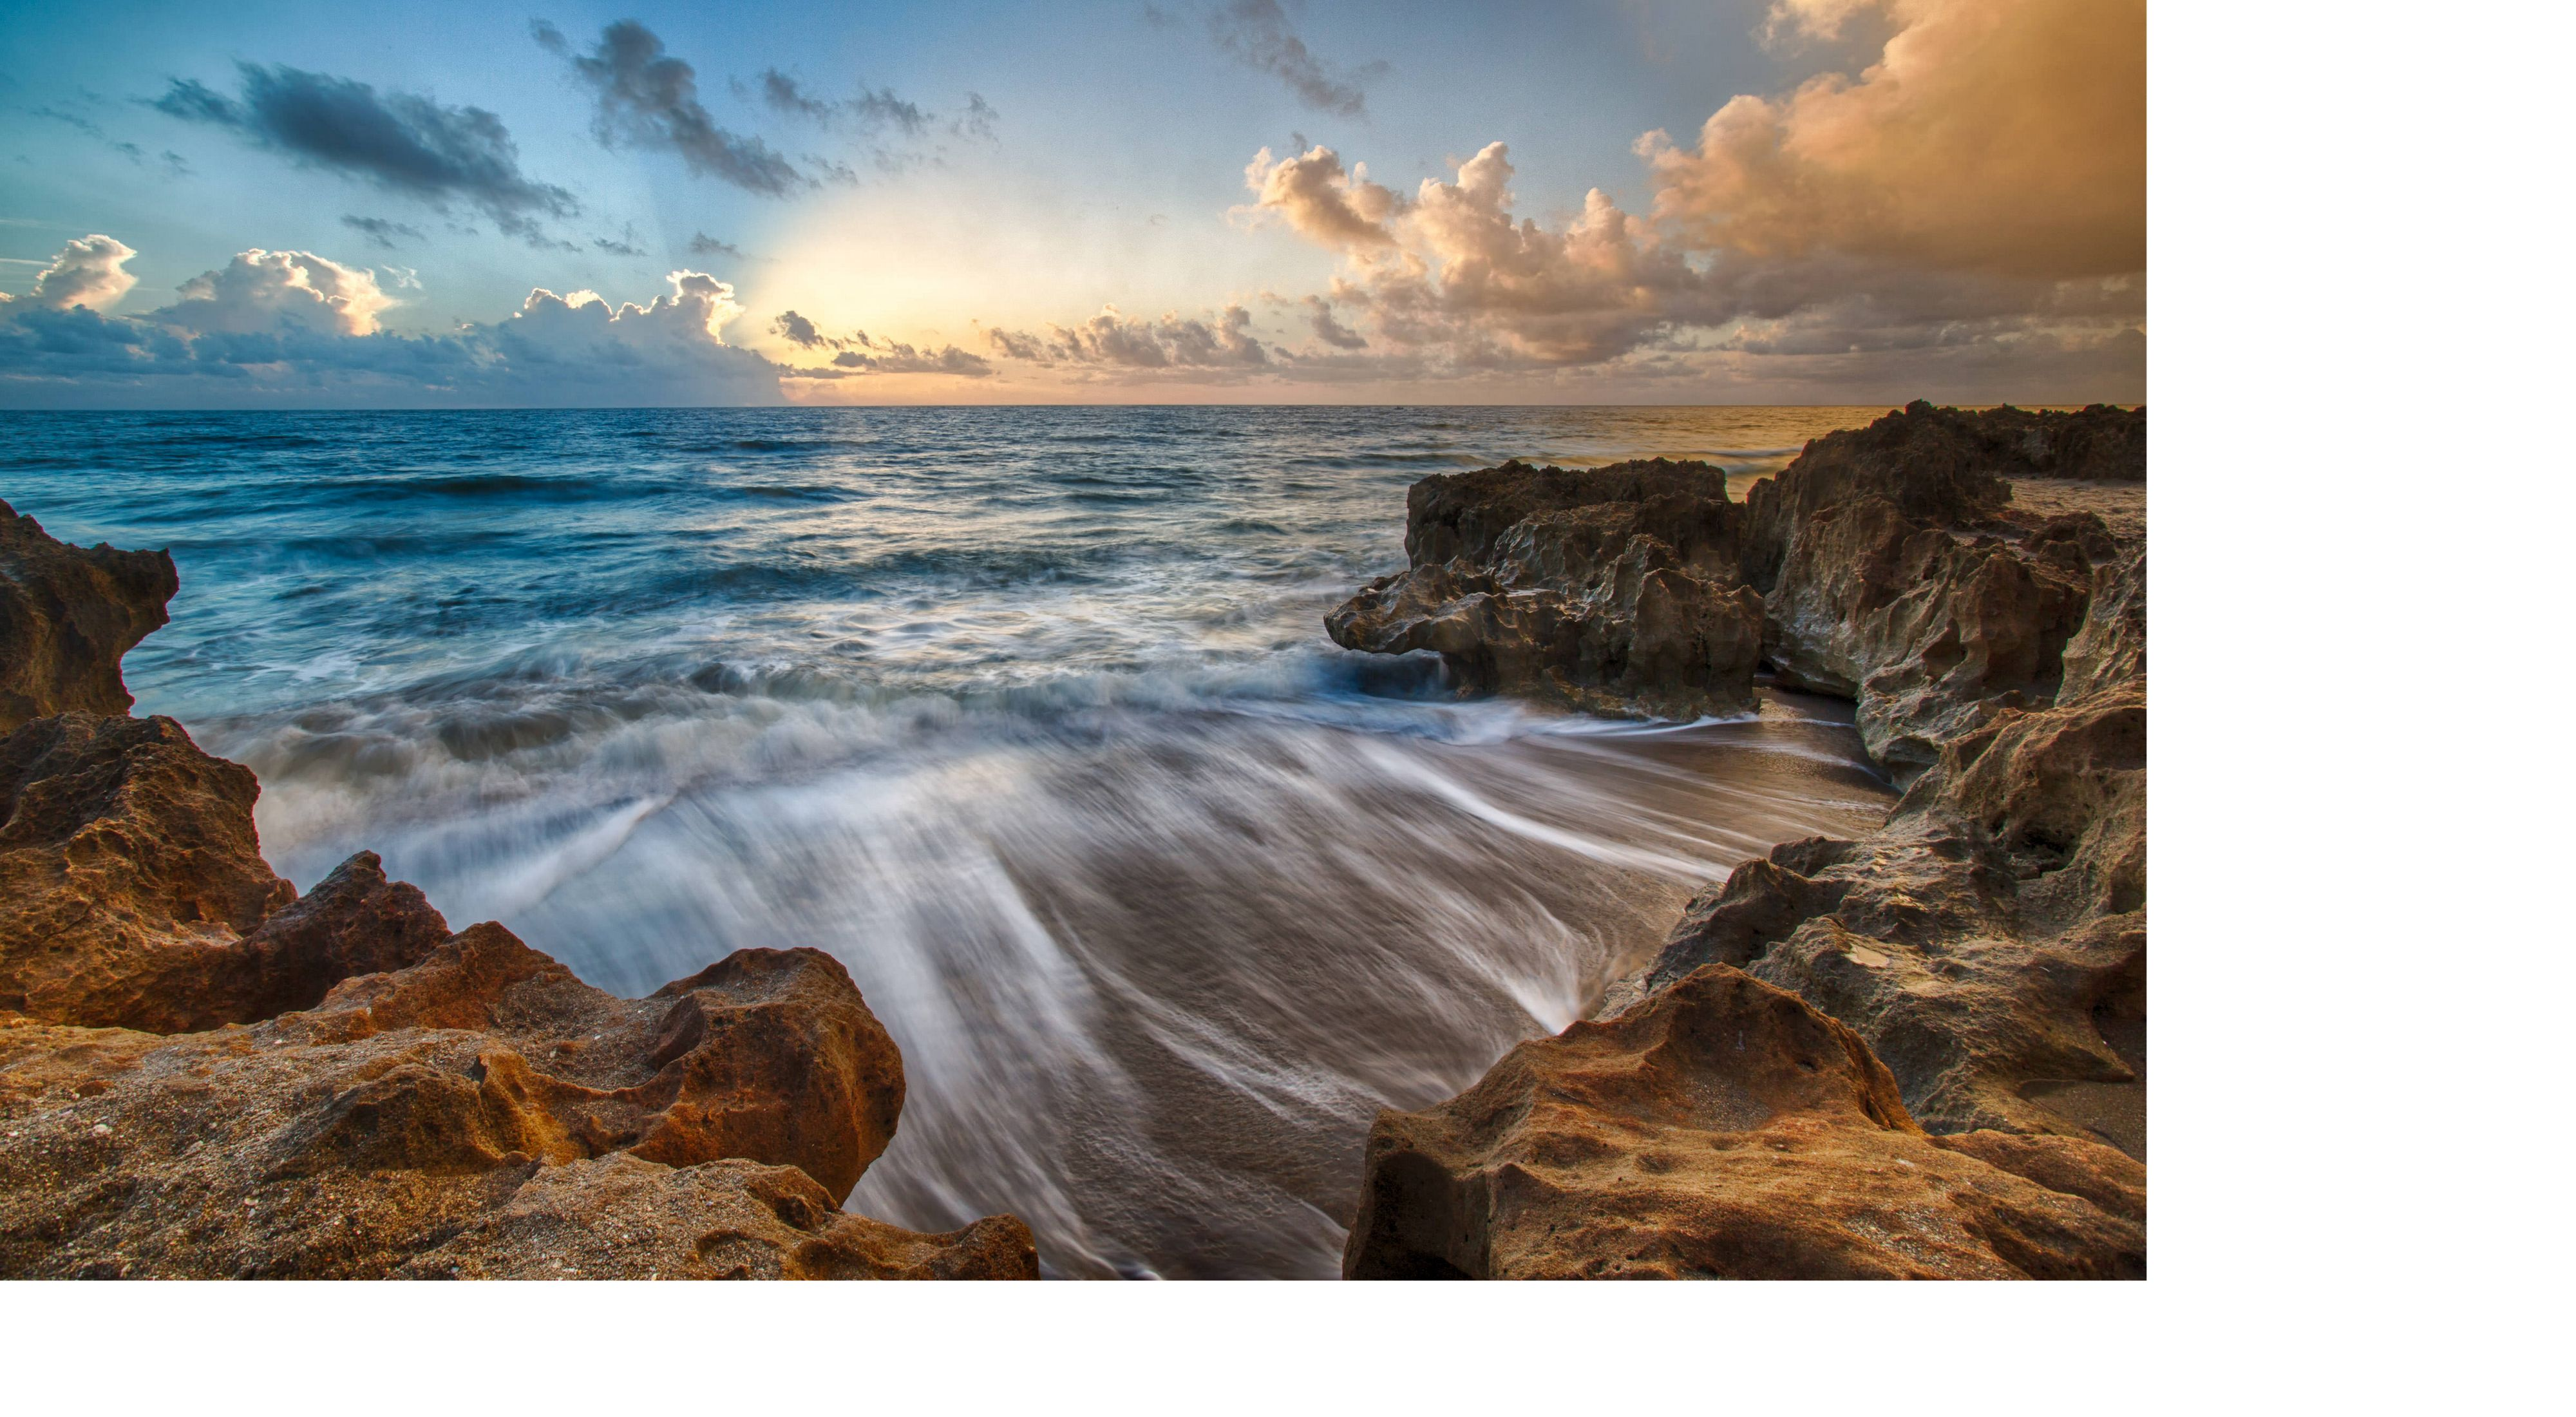 A timelapse photo of waves hitting a rocky shore